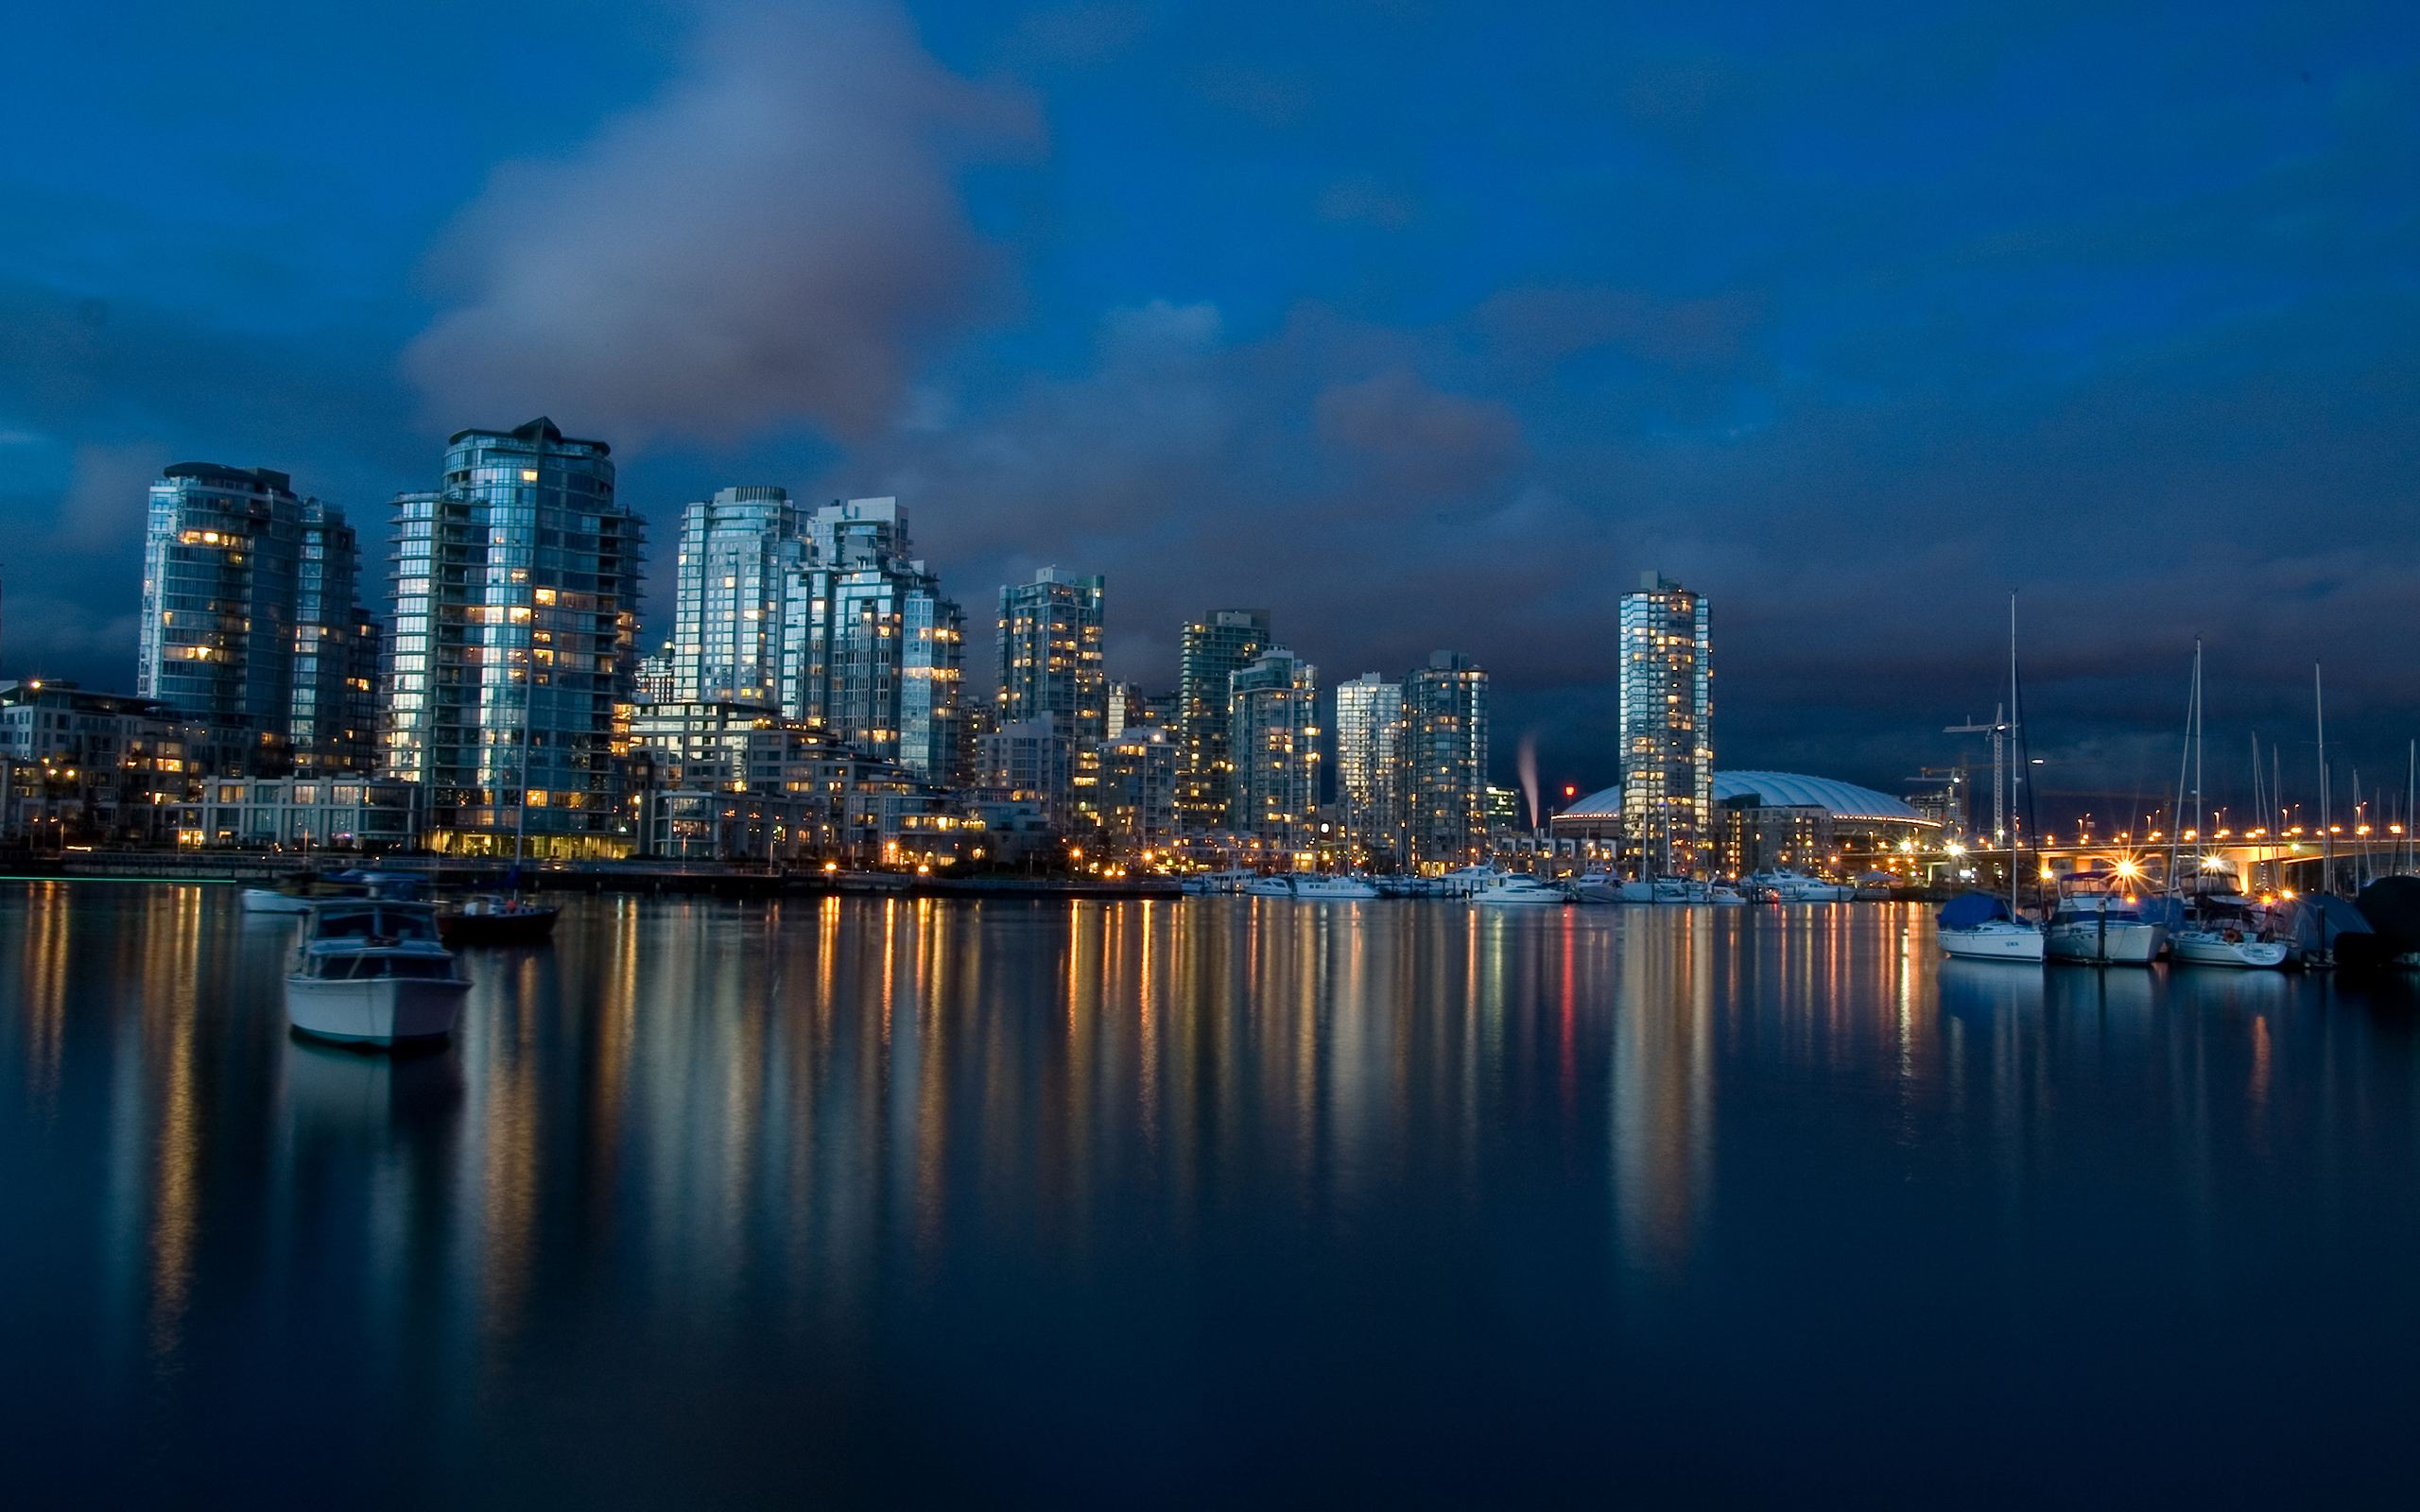 Vancouver Dusk Wallpapers HD Wallpapers 2560x1600